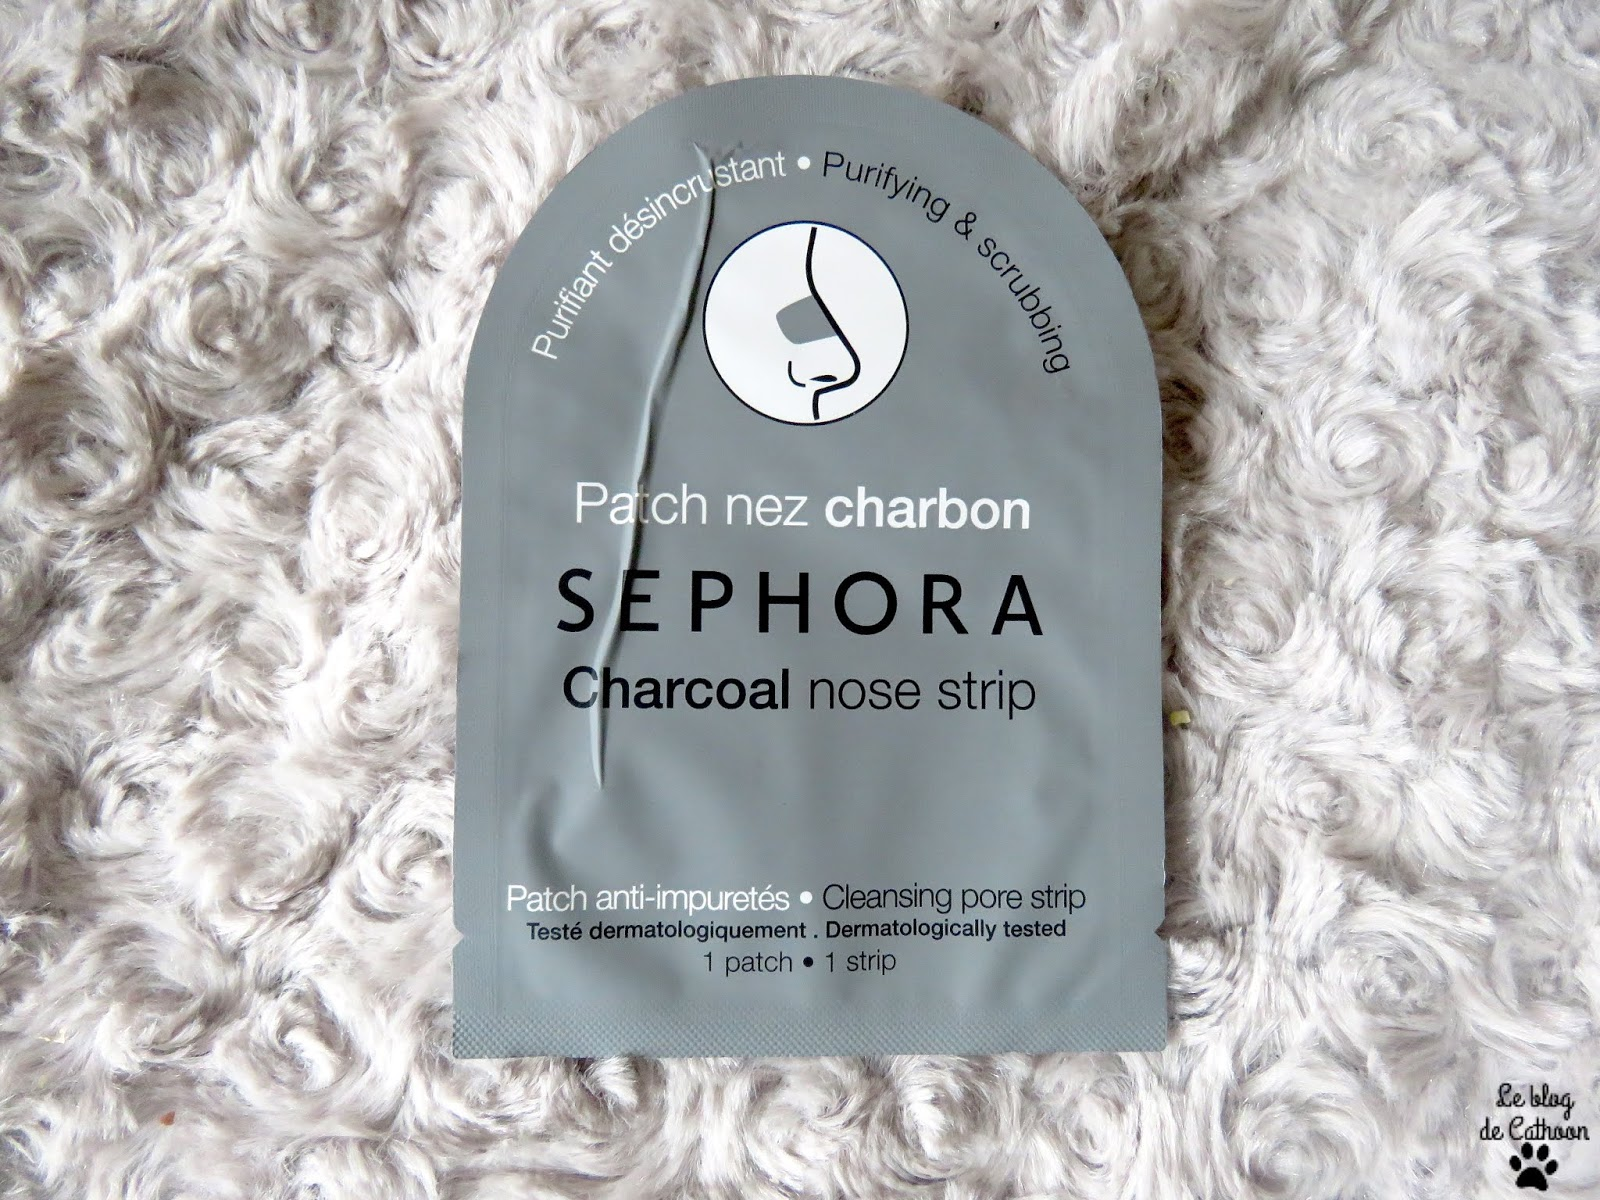 Patch Nez Charbon - Sephora